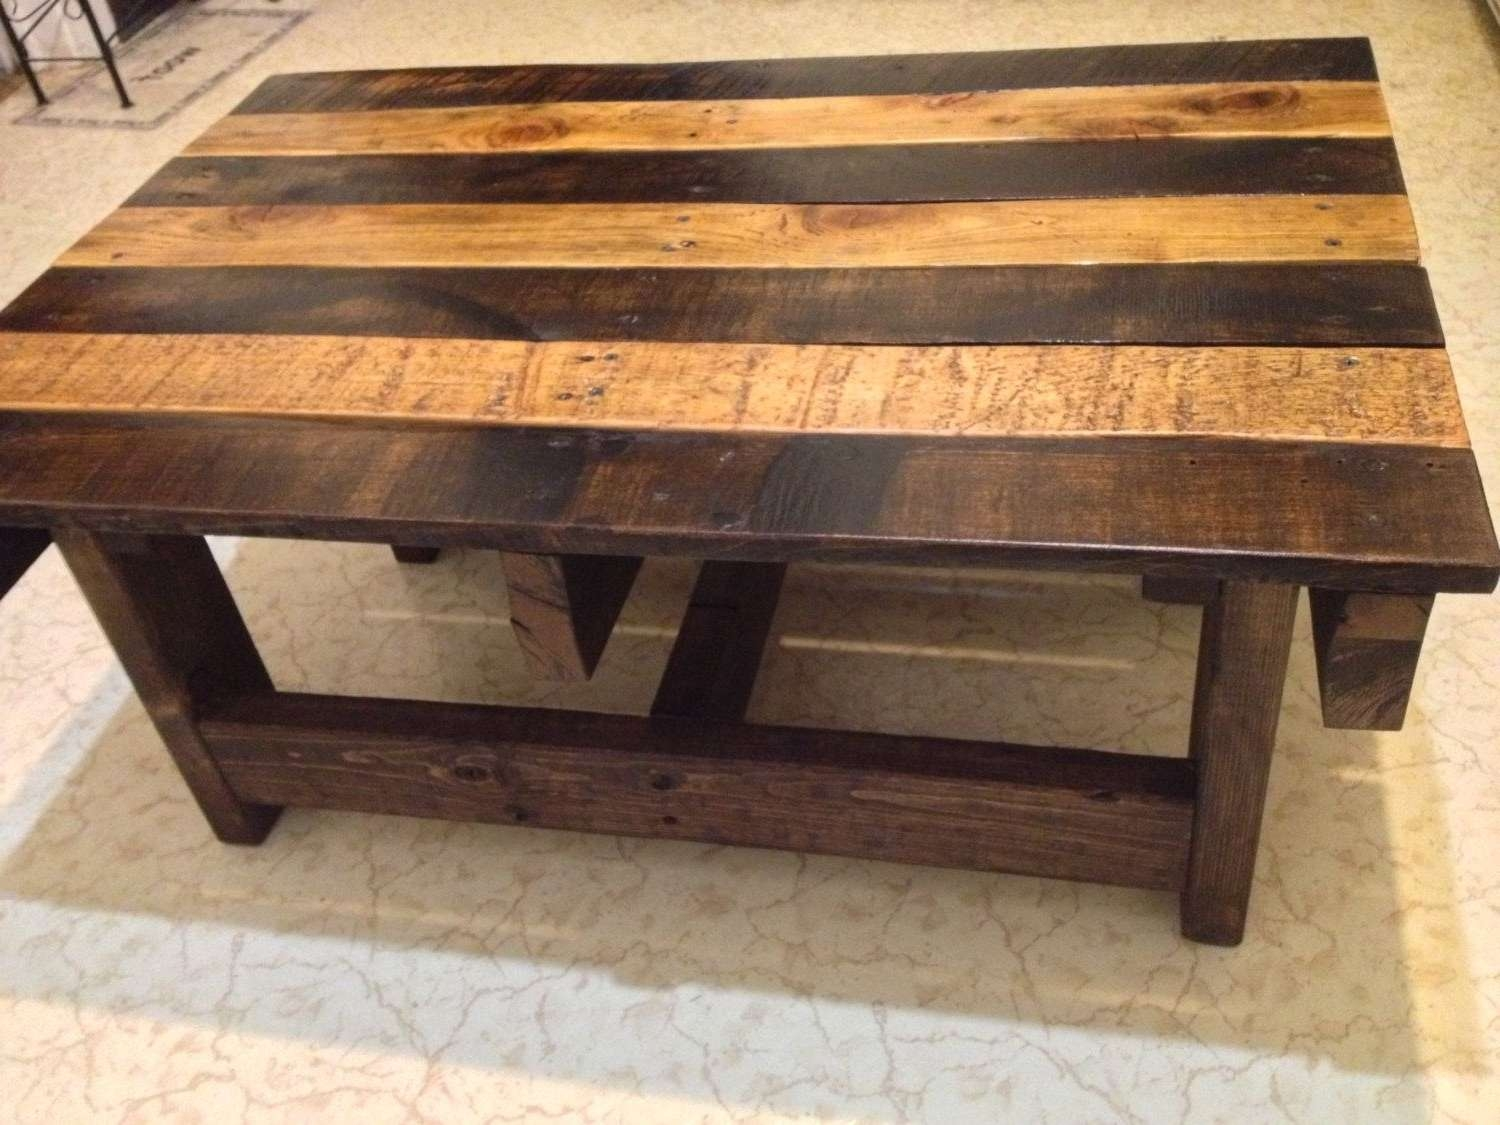 Hand Crafted Handmade Reclaimed Rustic Pallet Wood Coffee Table With Most Recently Released Handmade Wooden Coffee Tables (Gallery 2 of 20)